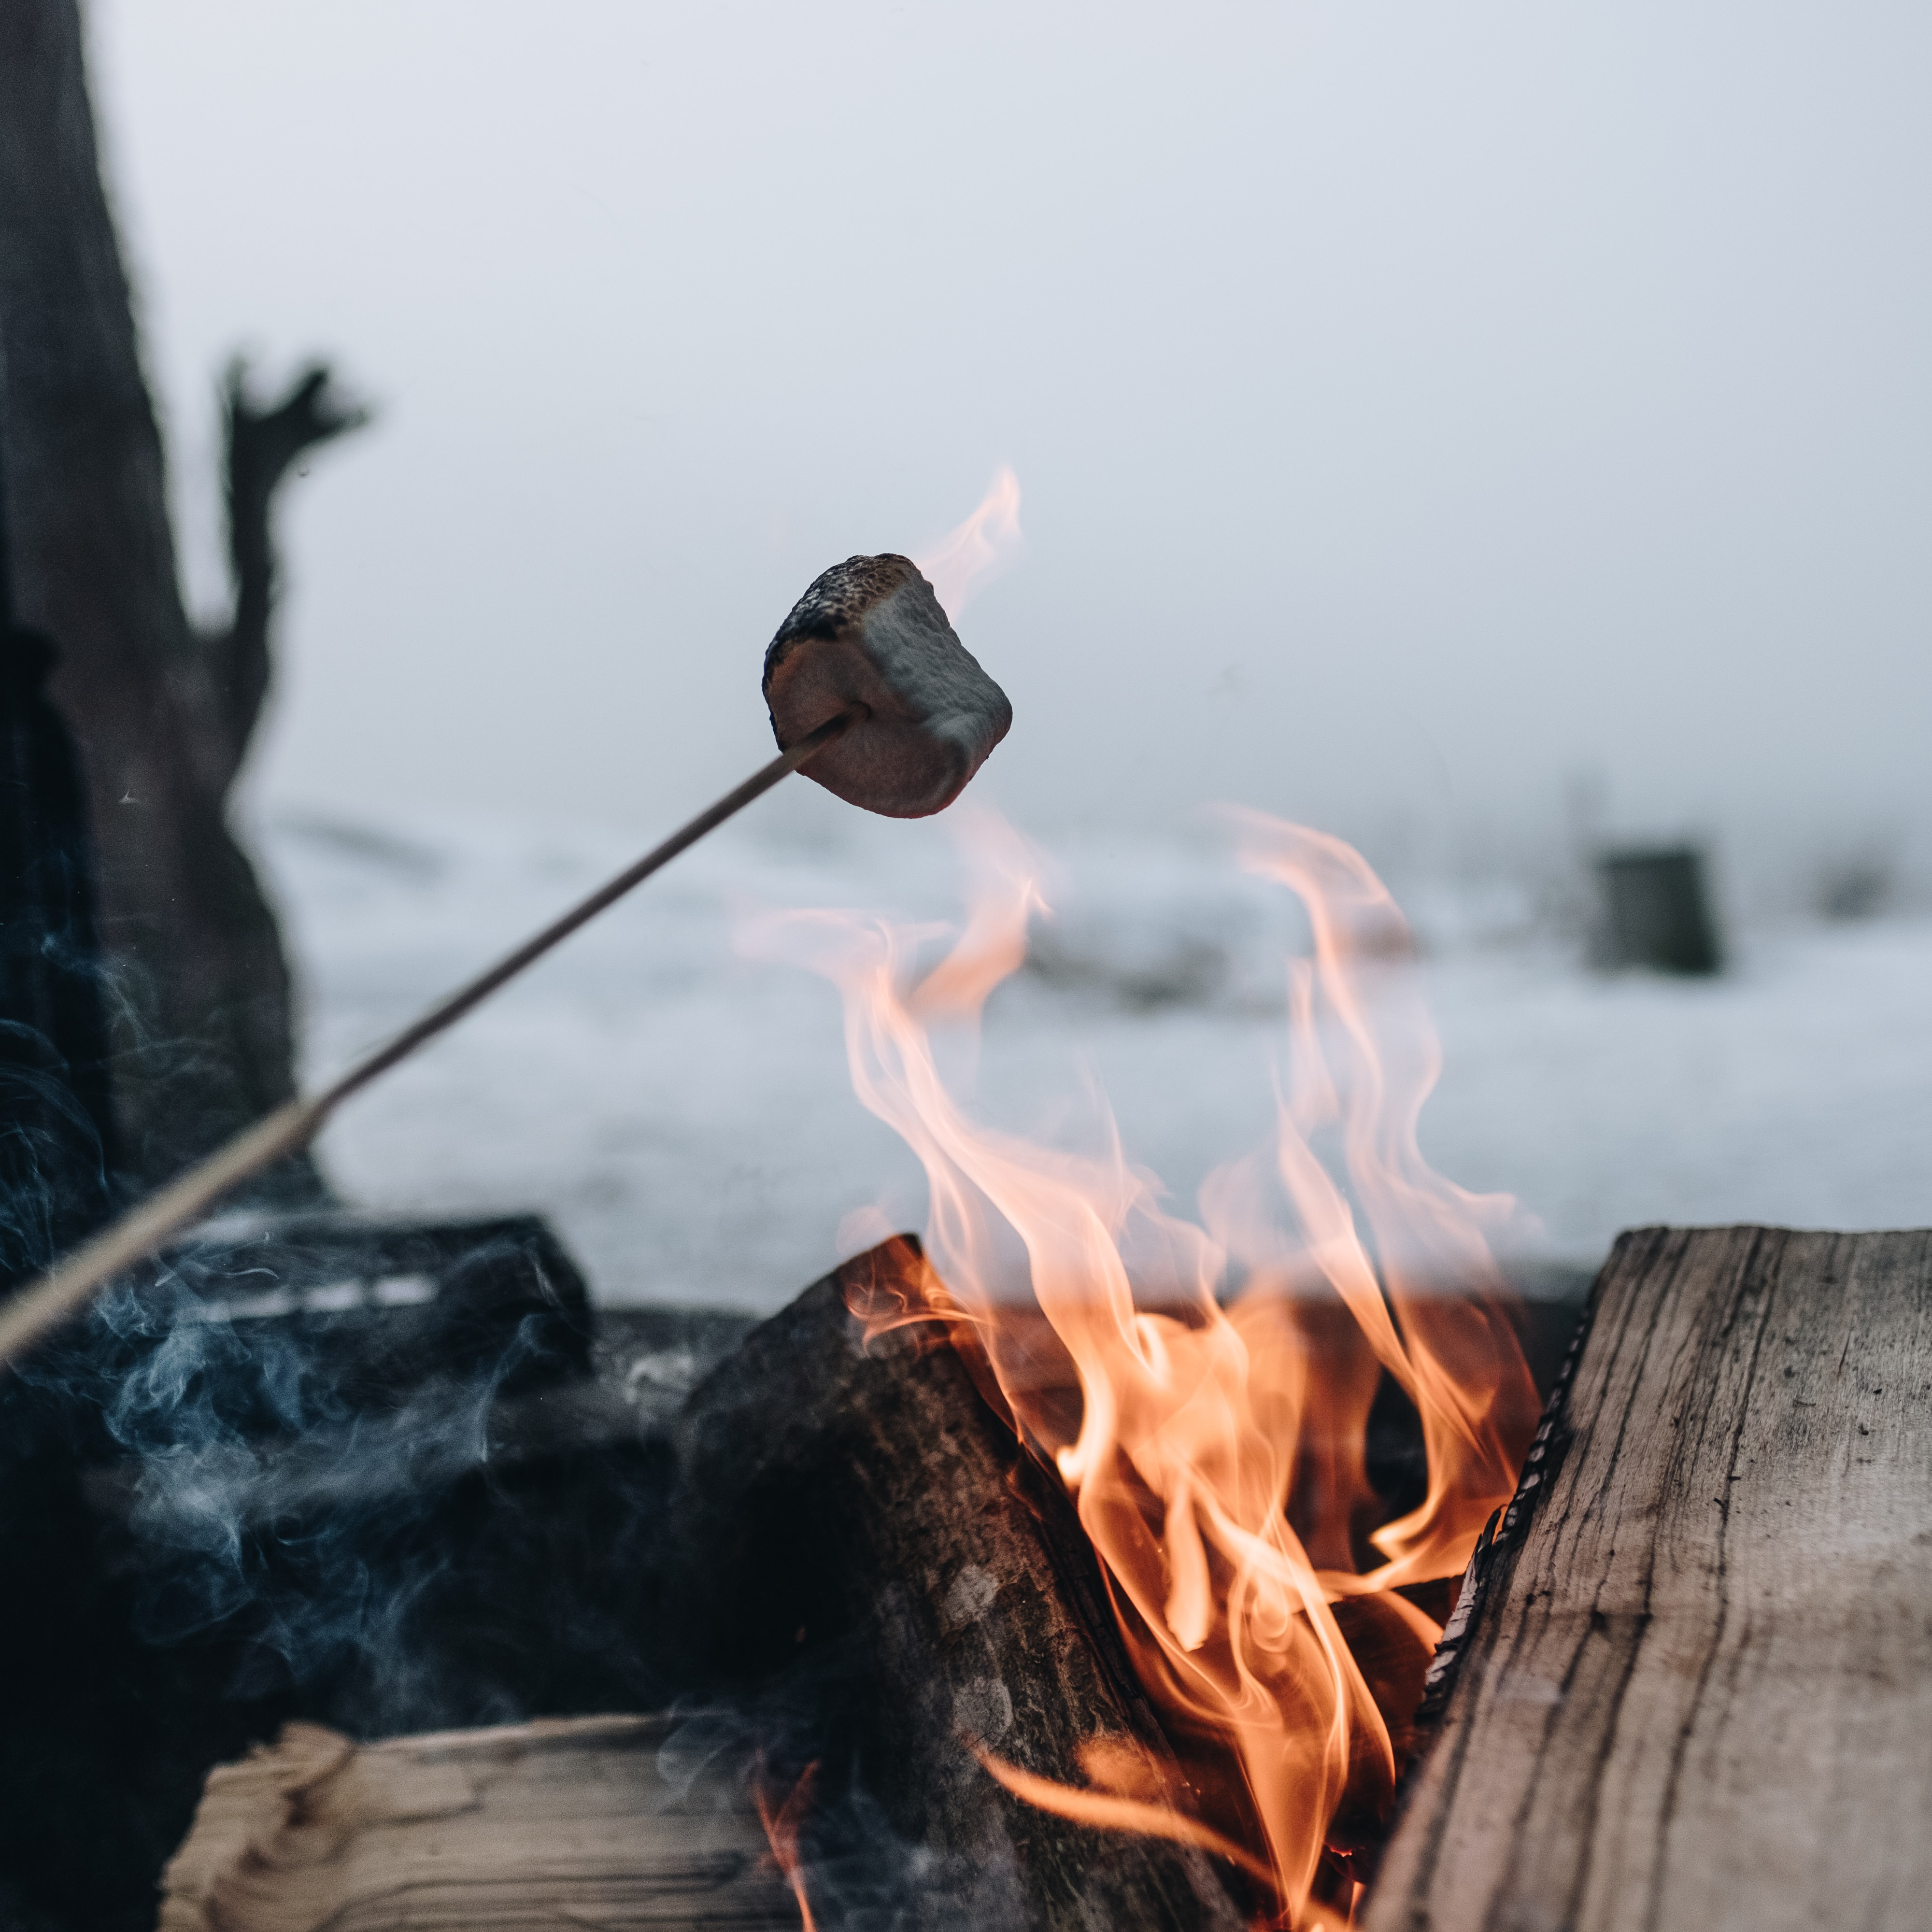 focus photo of grilled marshmallow on fire